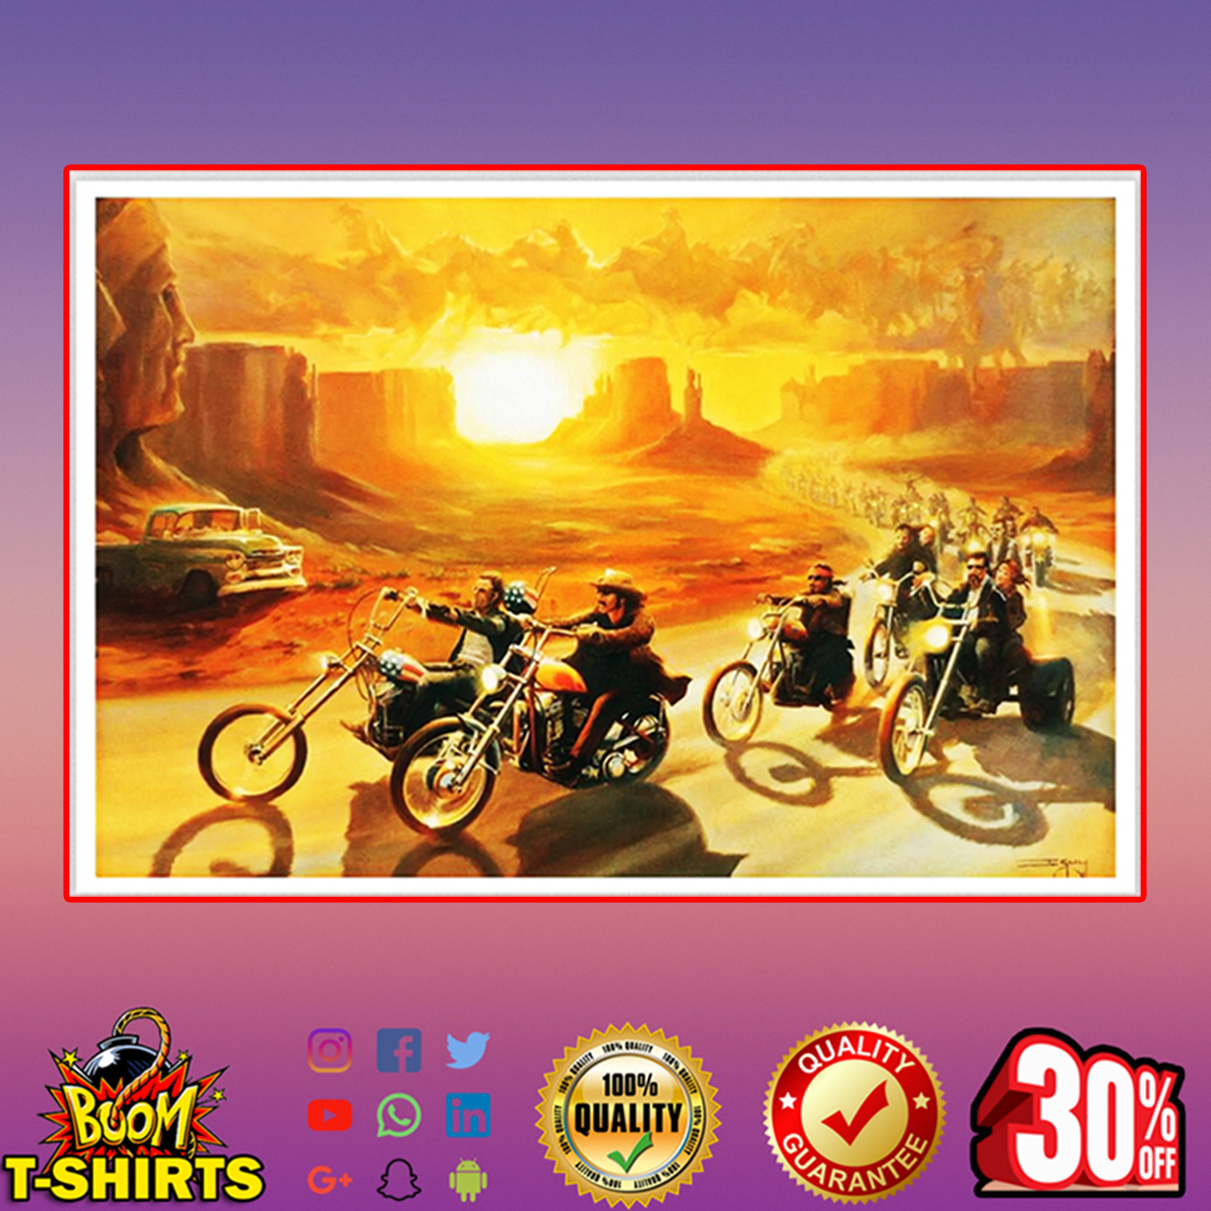 Easy Rider poster